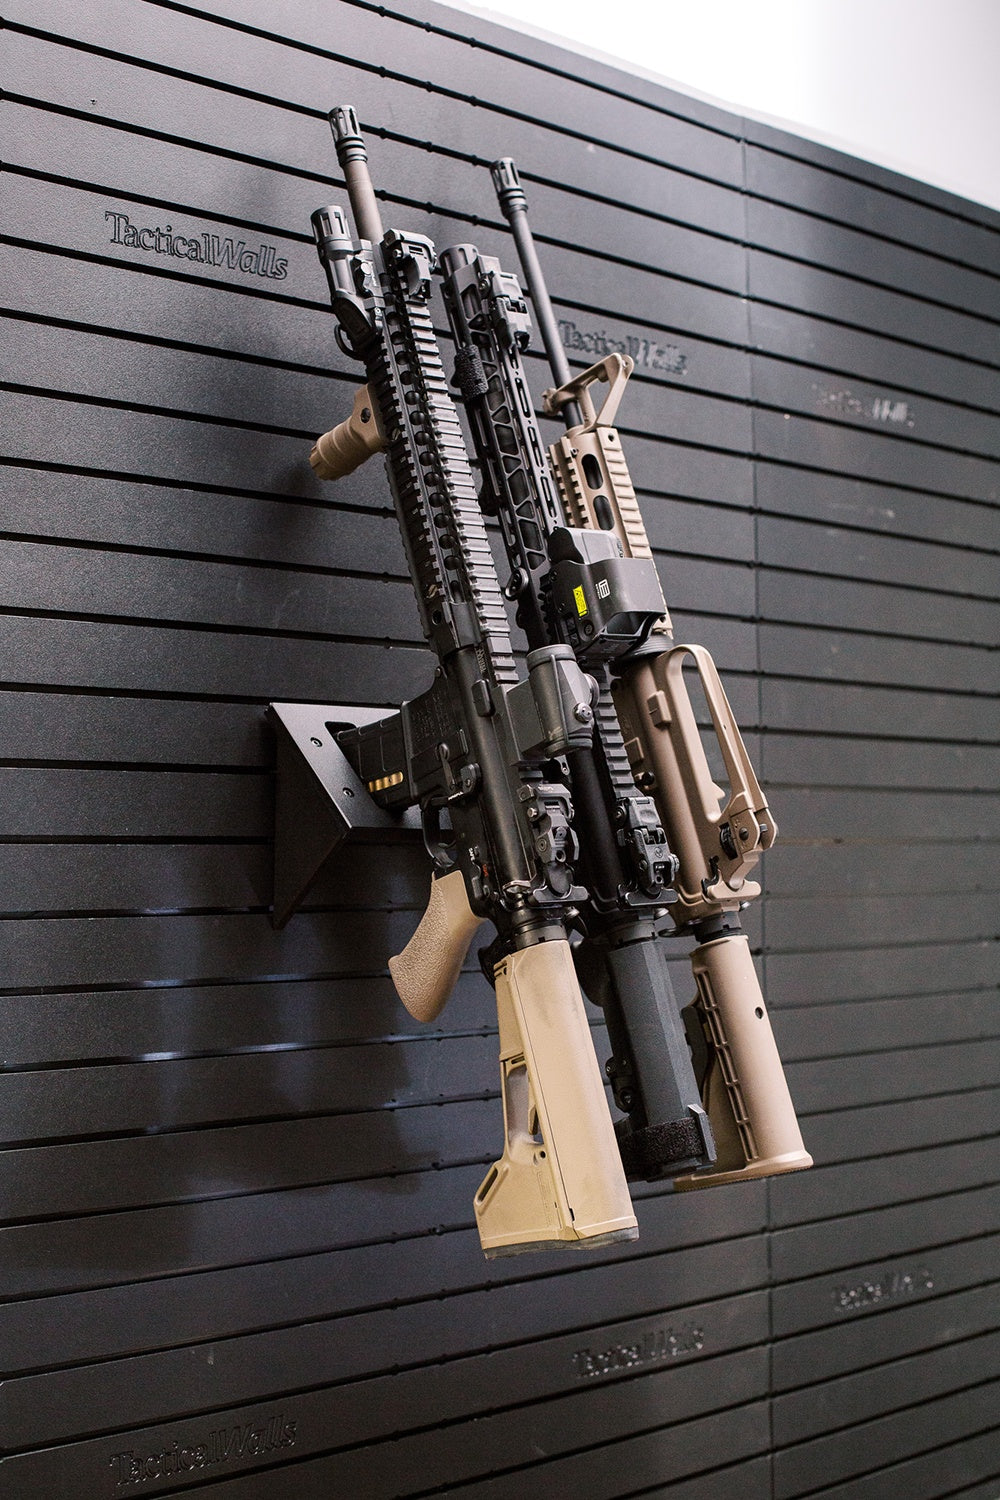 Tactical Walls MWMRH ModWall Multi-Rifle Hangers